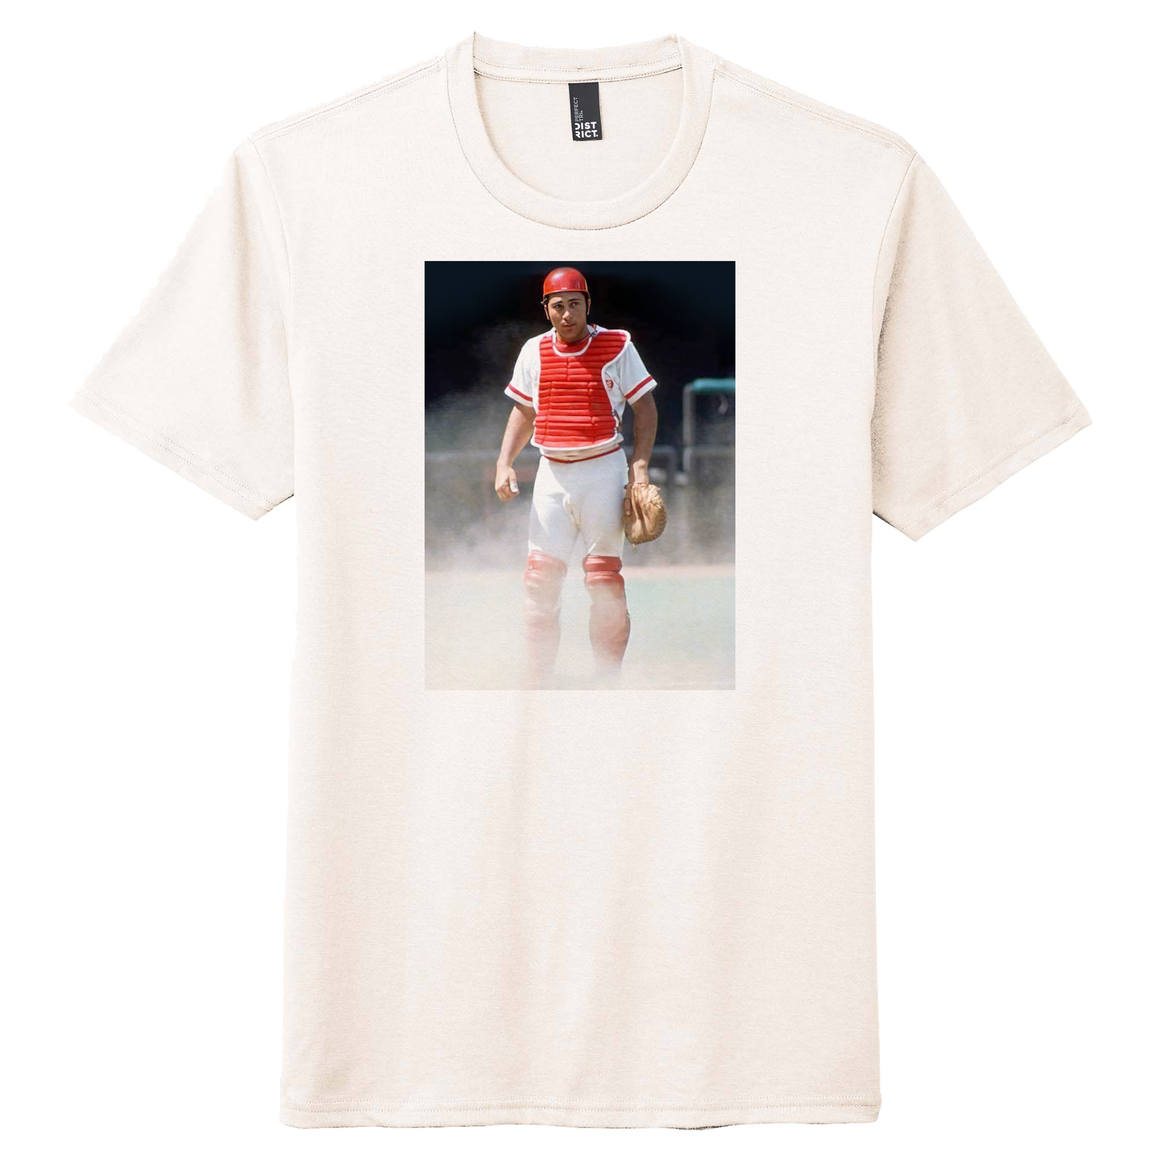 Johnny Bench Catcher Photo Tee - Cincy Shirts